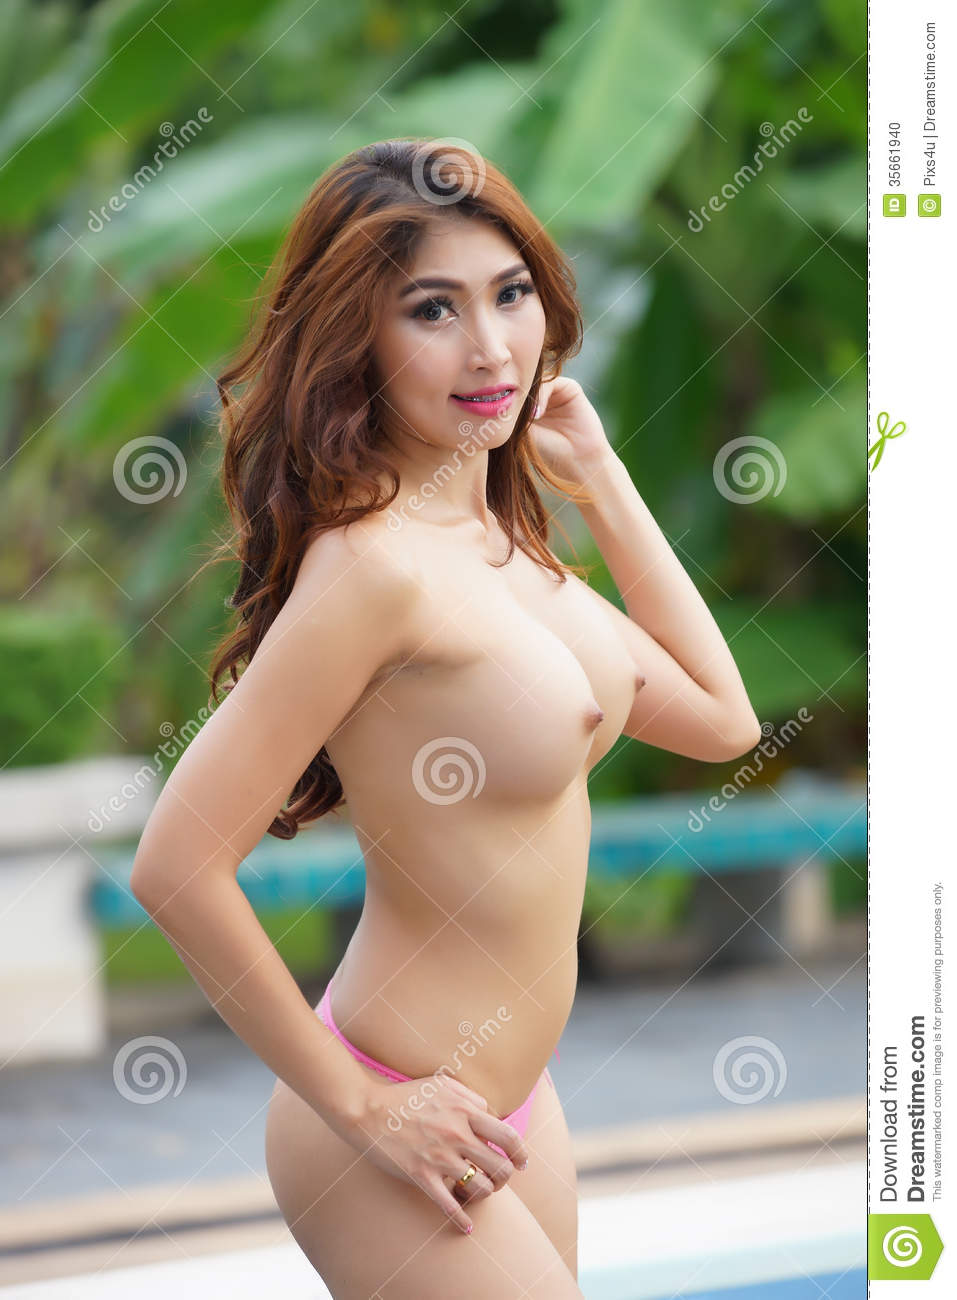 Like Hot nude girls posing